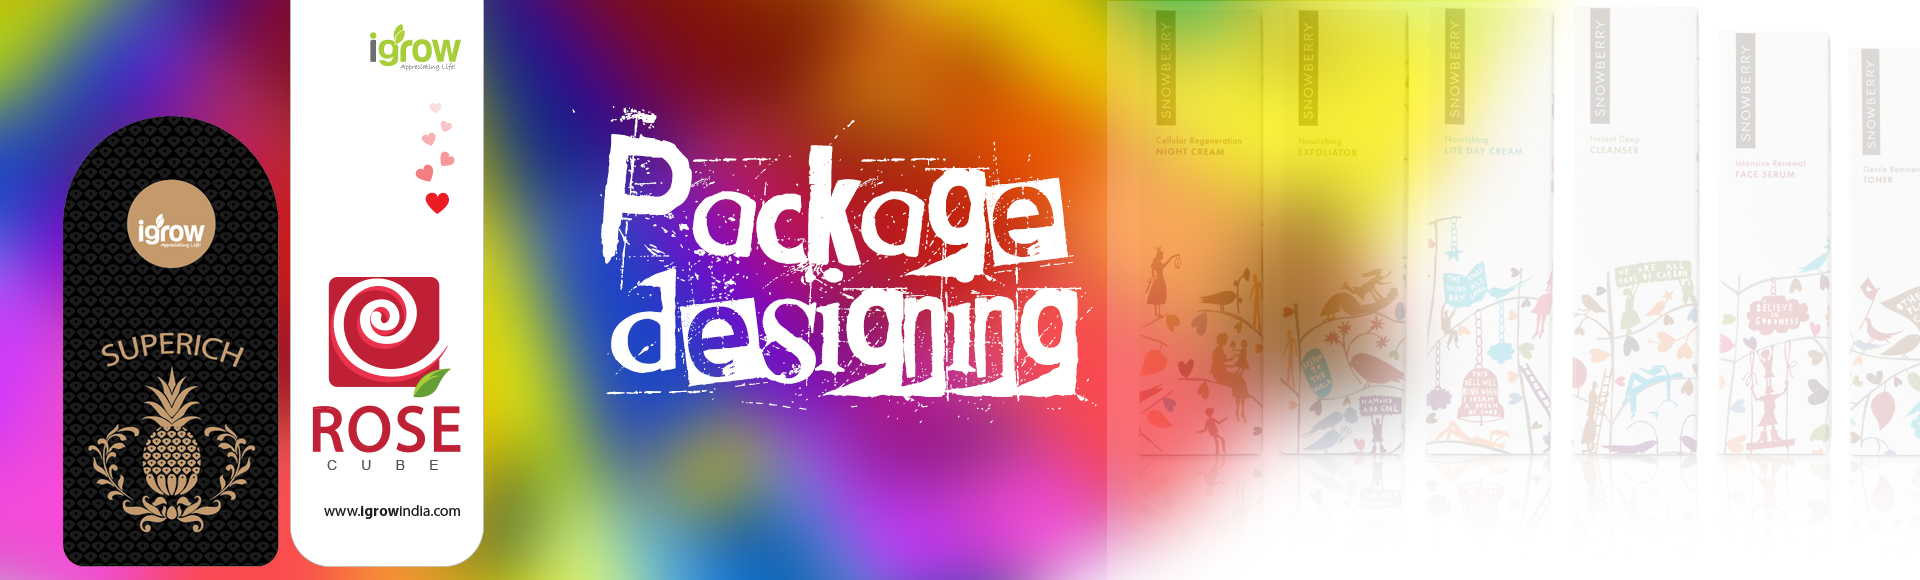 Package designi